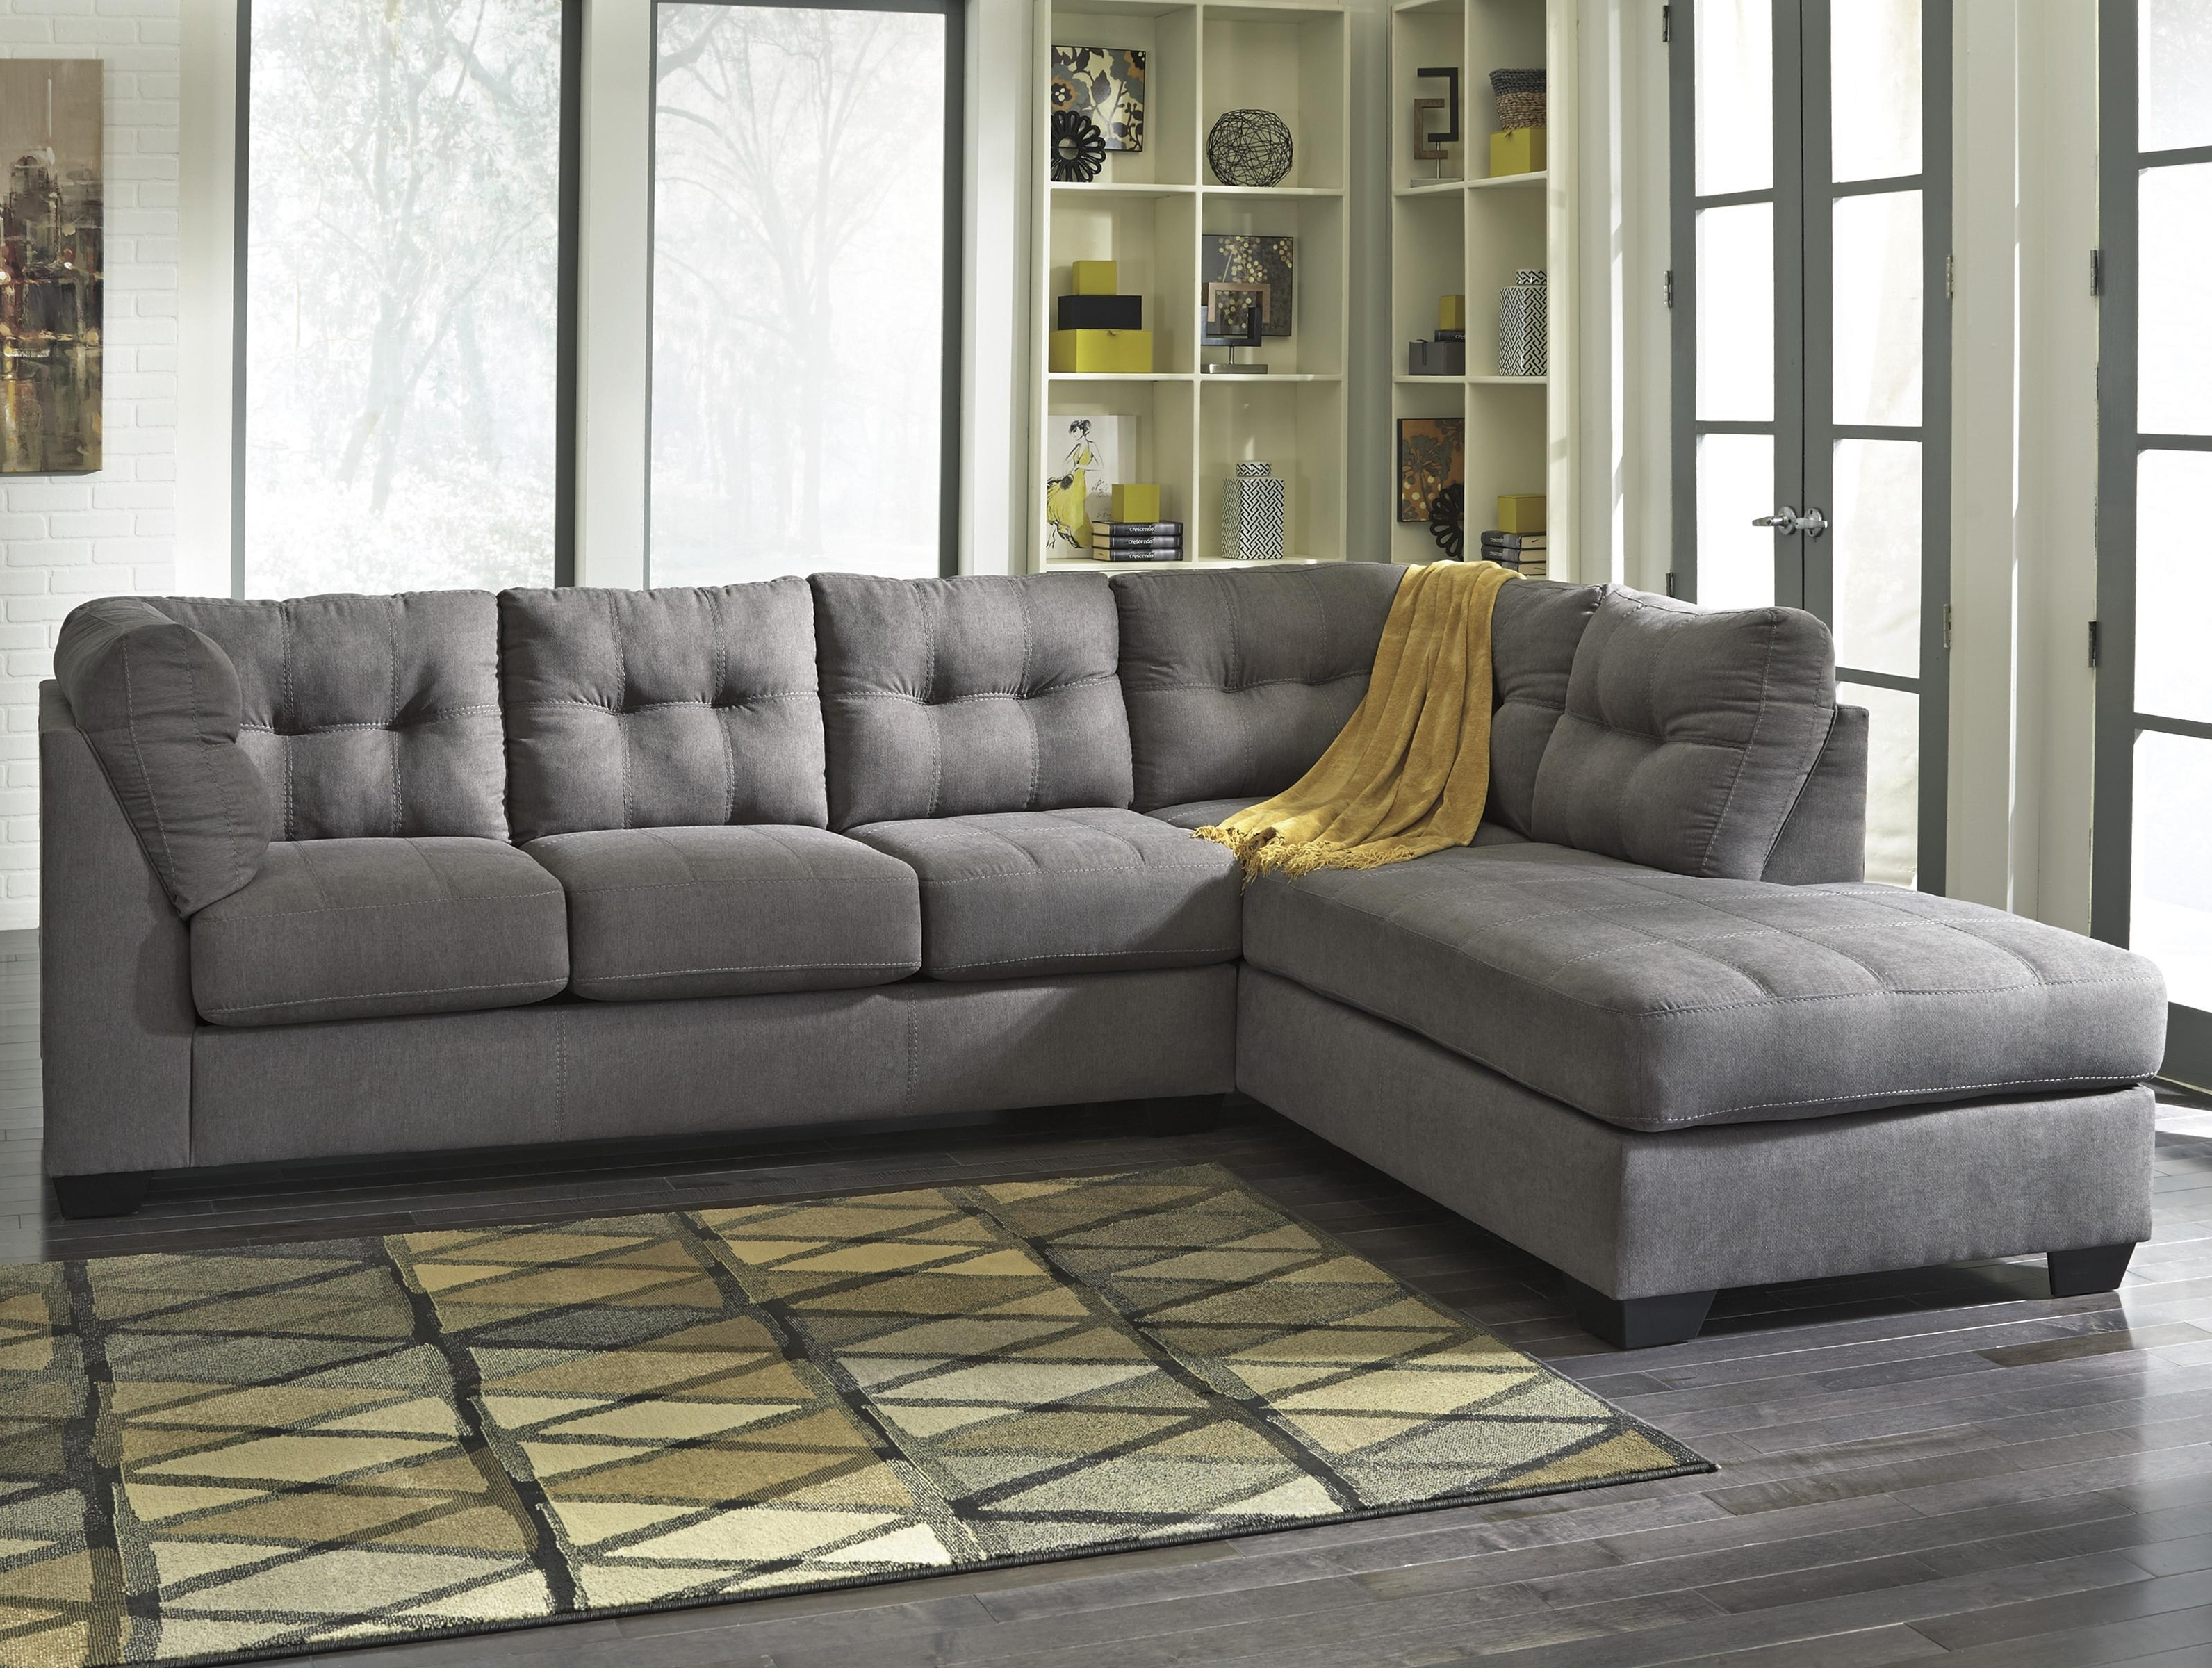 Ashley Furniture Chaise Sofas Regarding Trendy Benchcraft Maier – Charcoal 2 Piece Sectional W/ Sleeper Sofa (View 4 of 15)